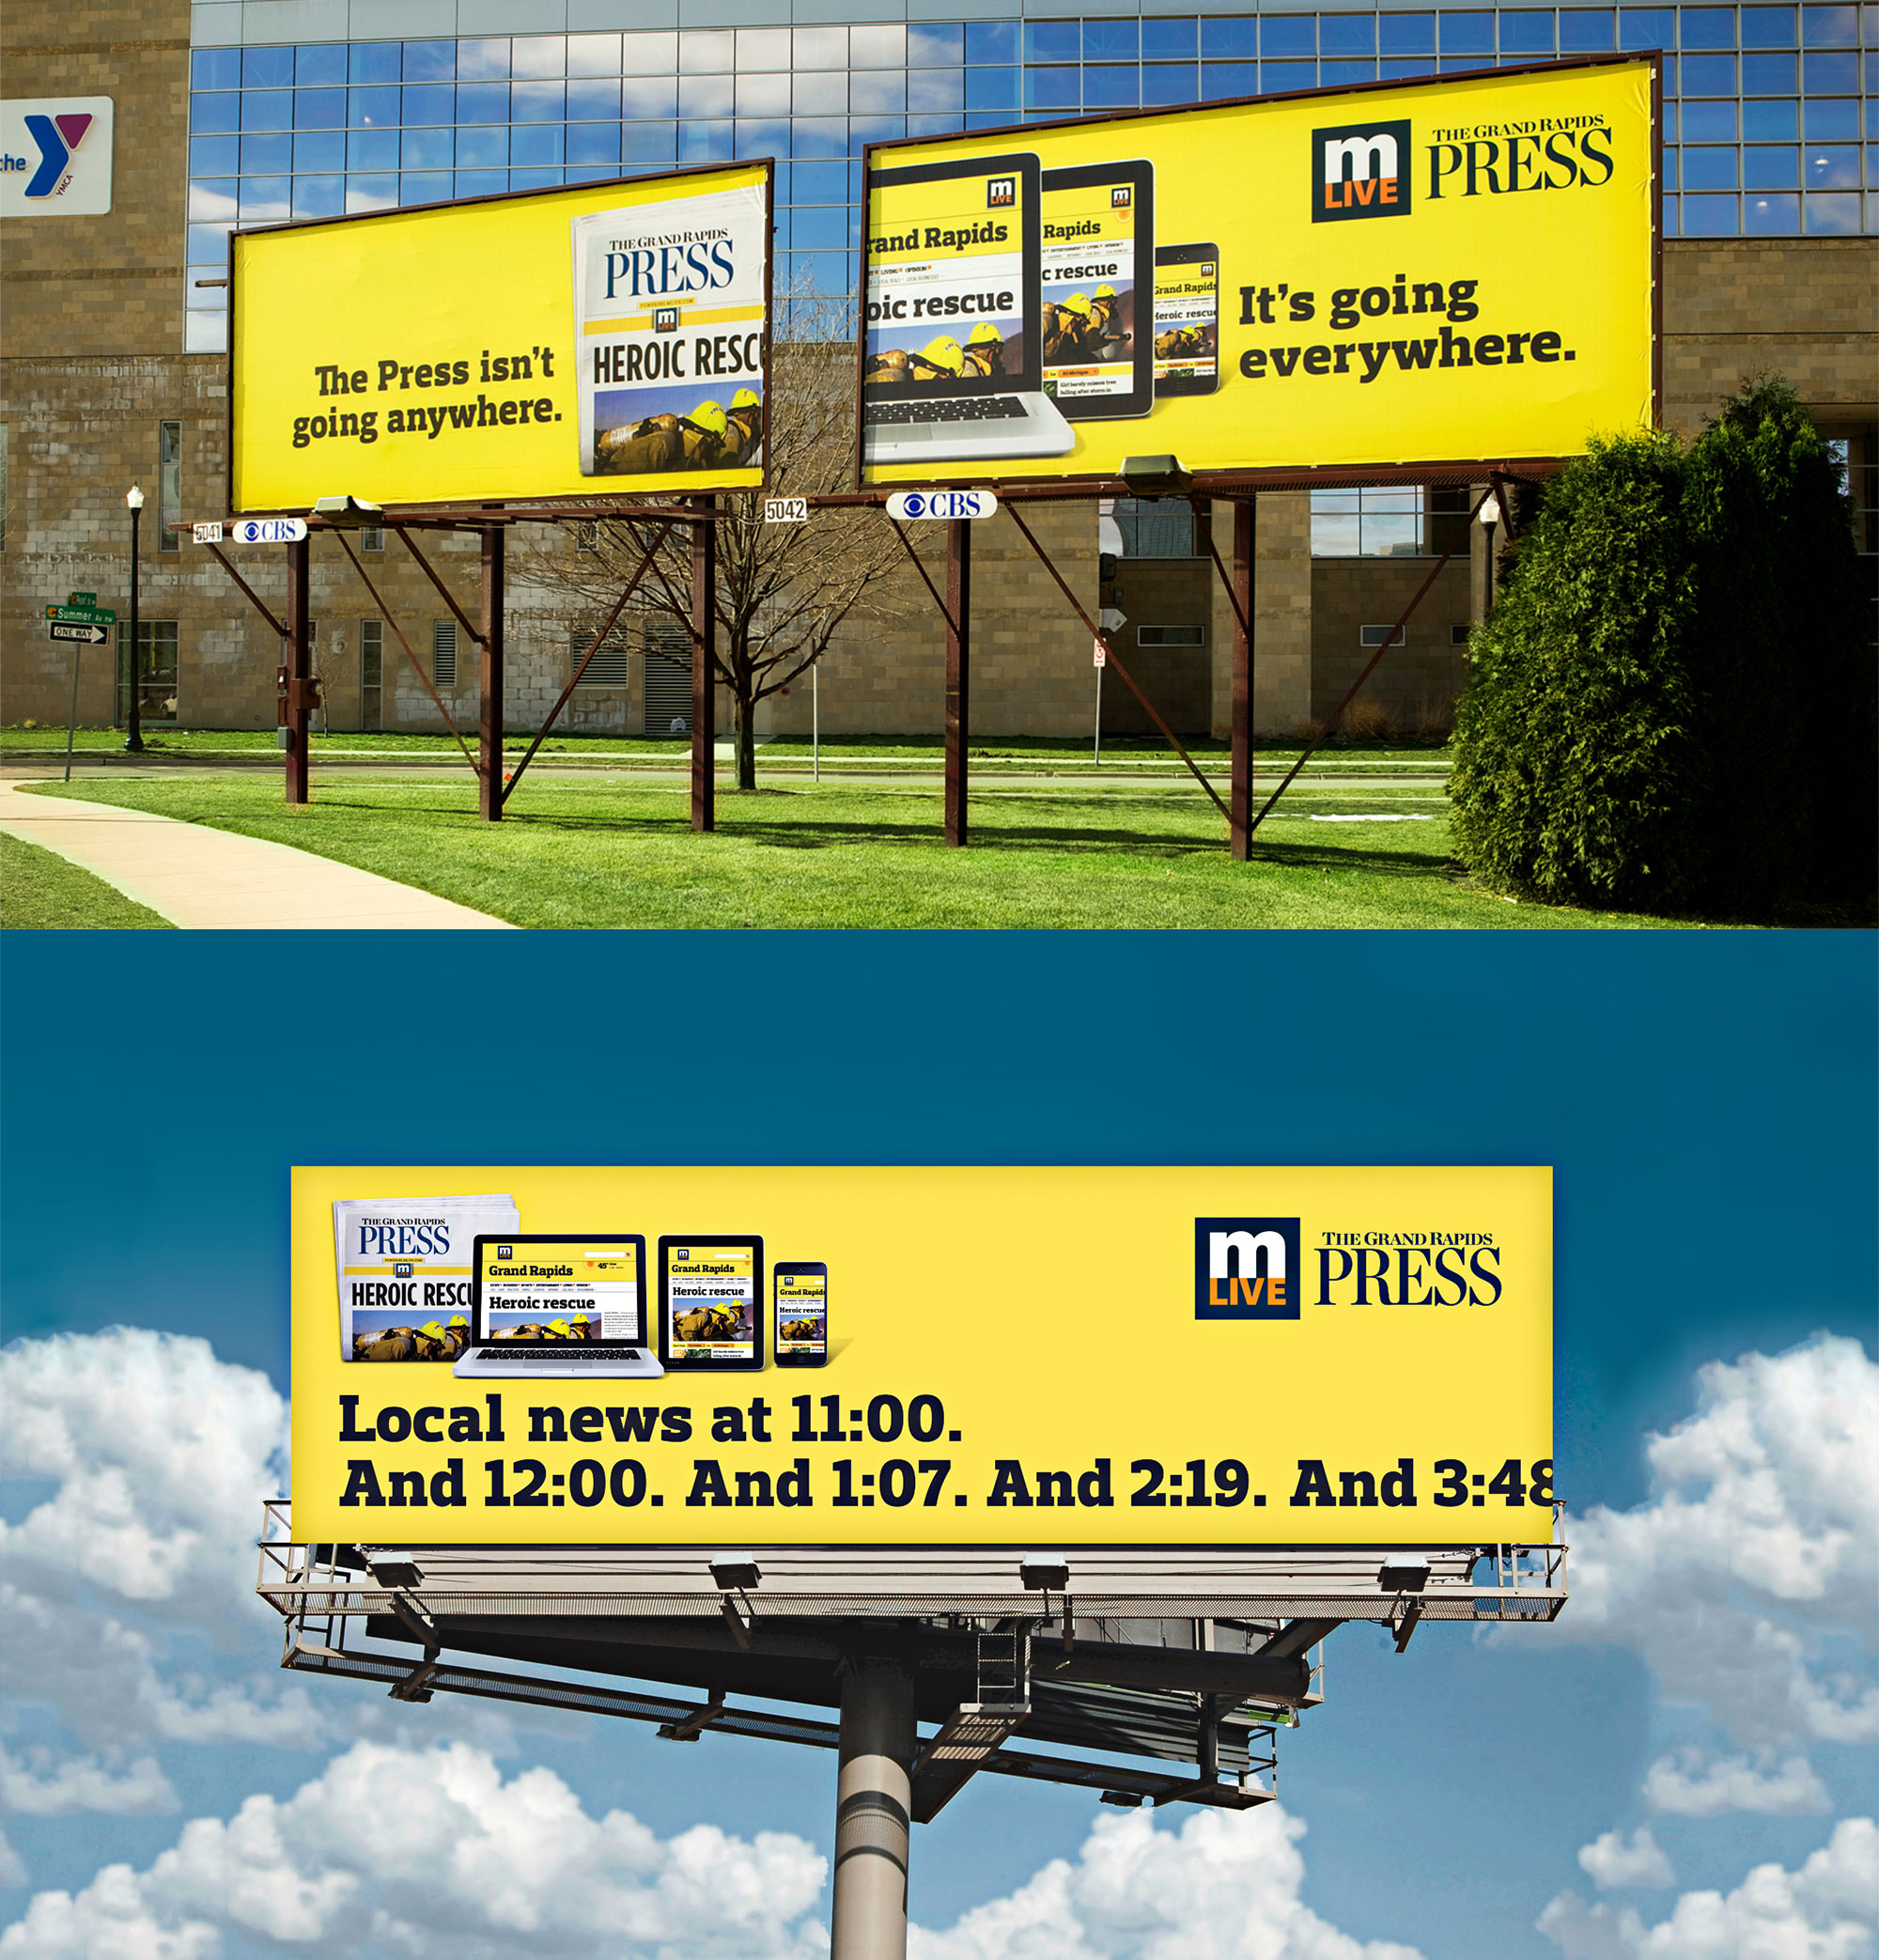 mLive billboards